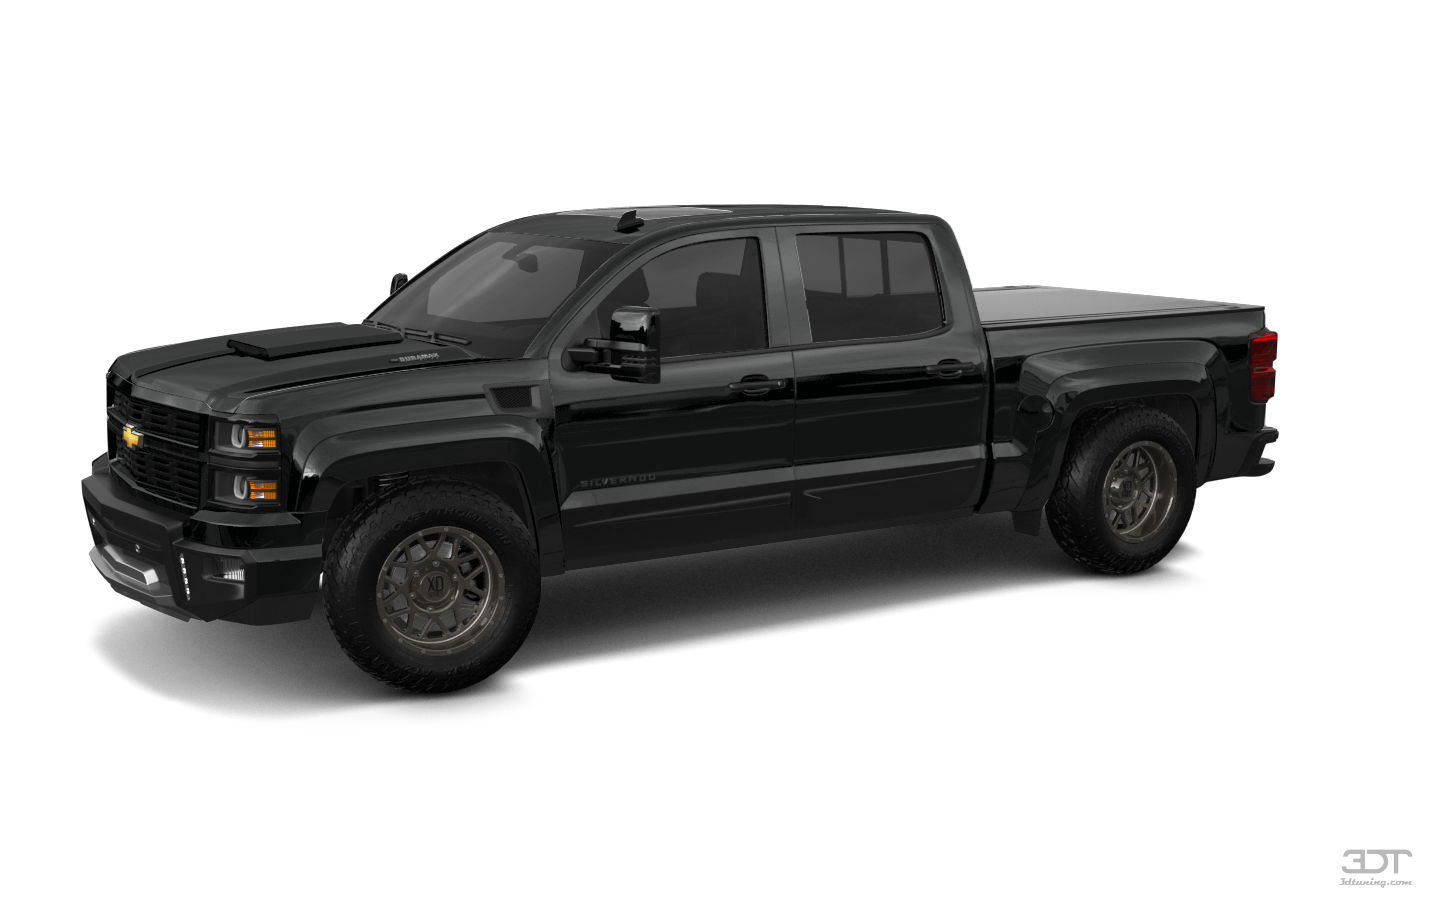 Chevrolet Silverado 1500 4 Door pickup truck 2014 tuning